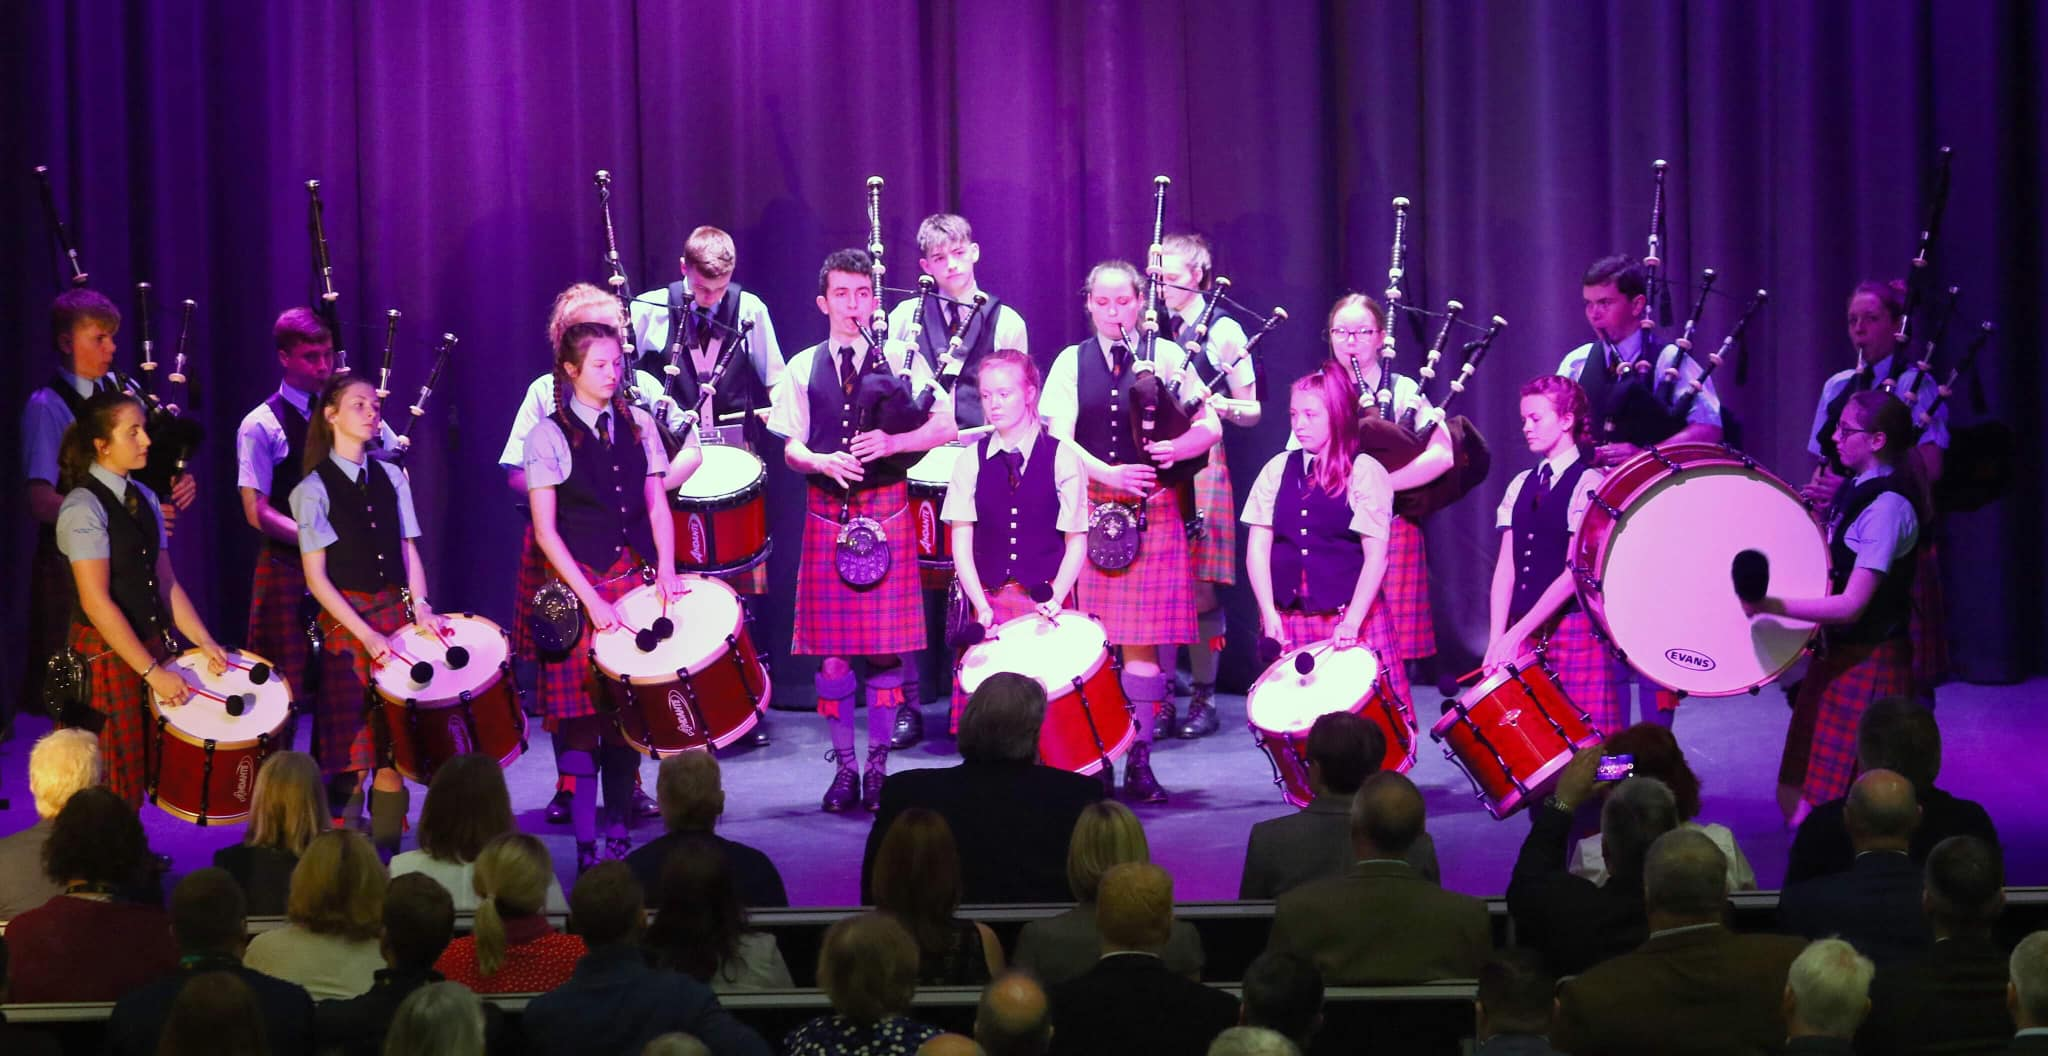 Oban High School Pipe Band - World Champions